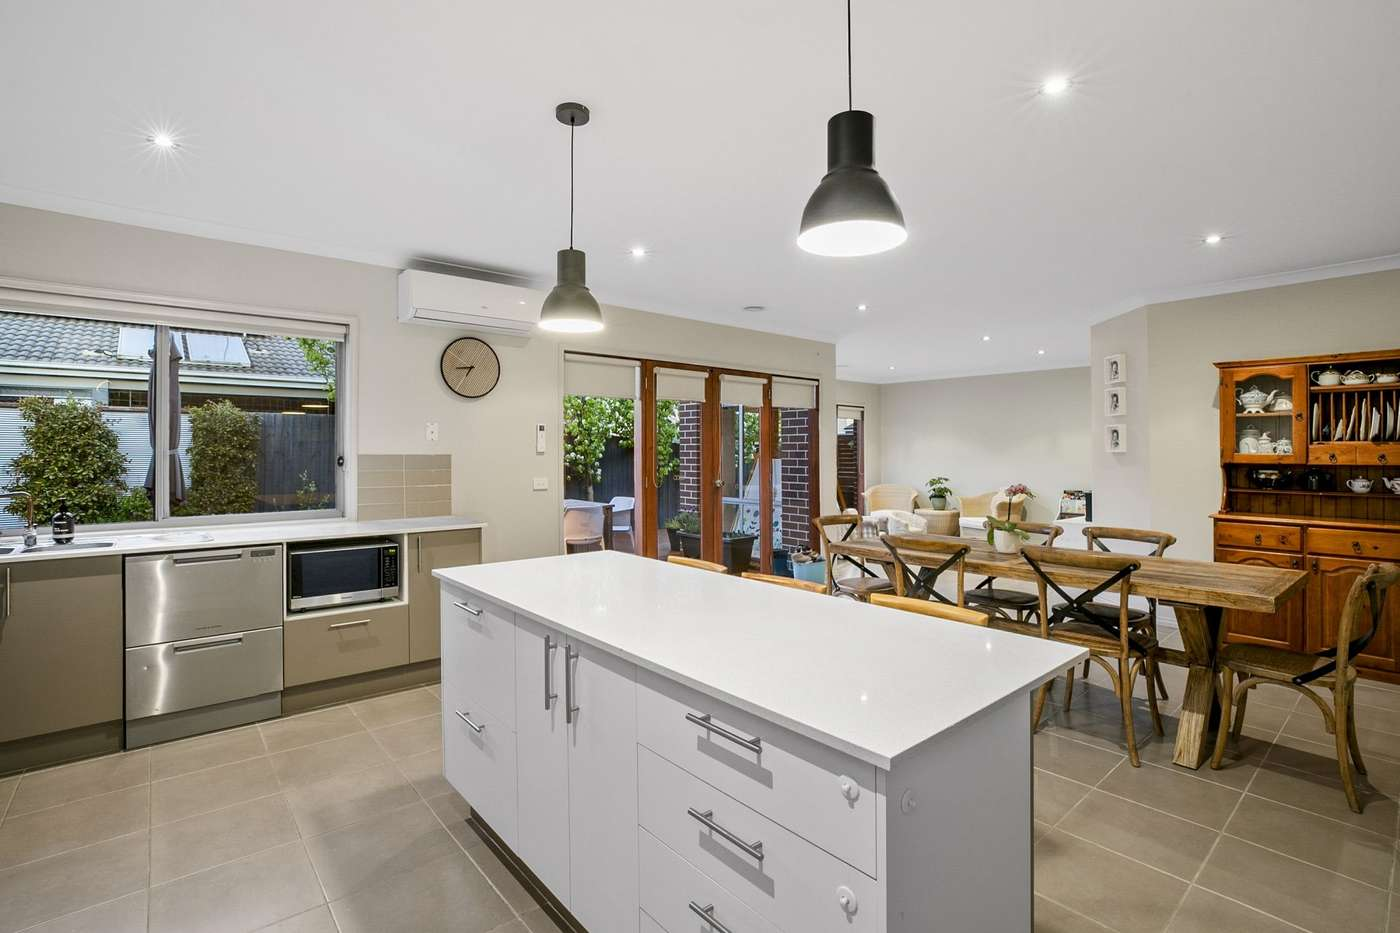 Main view of Homely house listing, 12 The Glen, Drysdale, VIC 3222